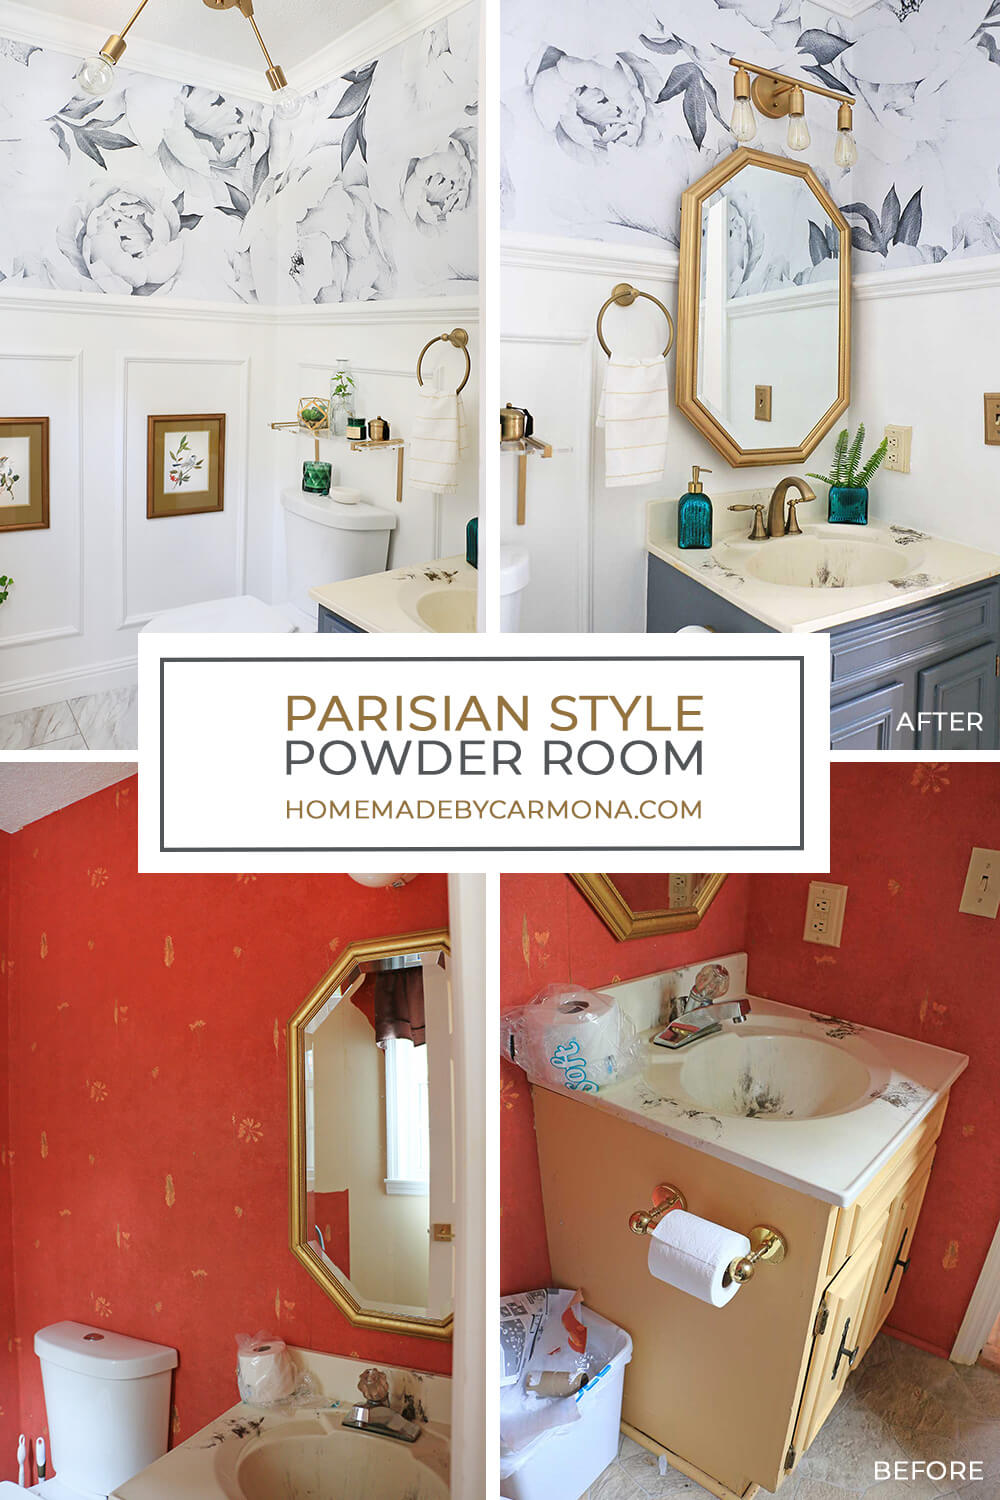 Parisian-style-powder-room-before-and-after